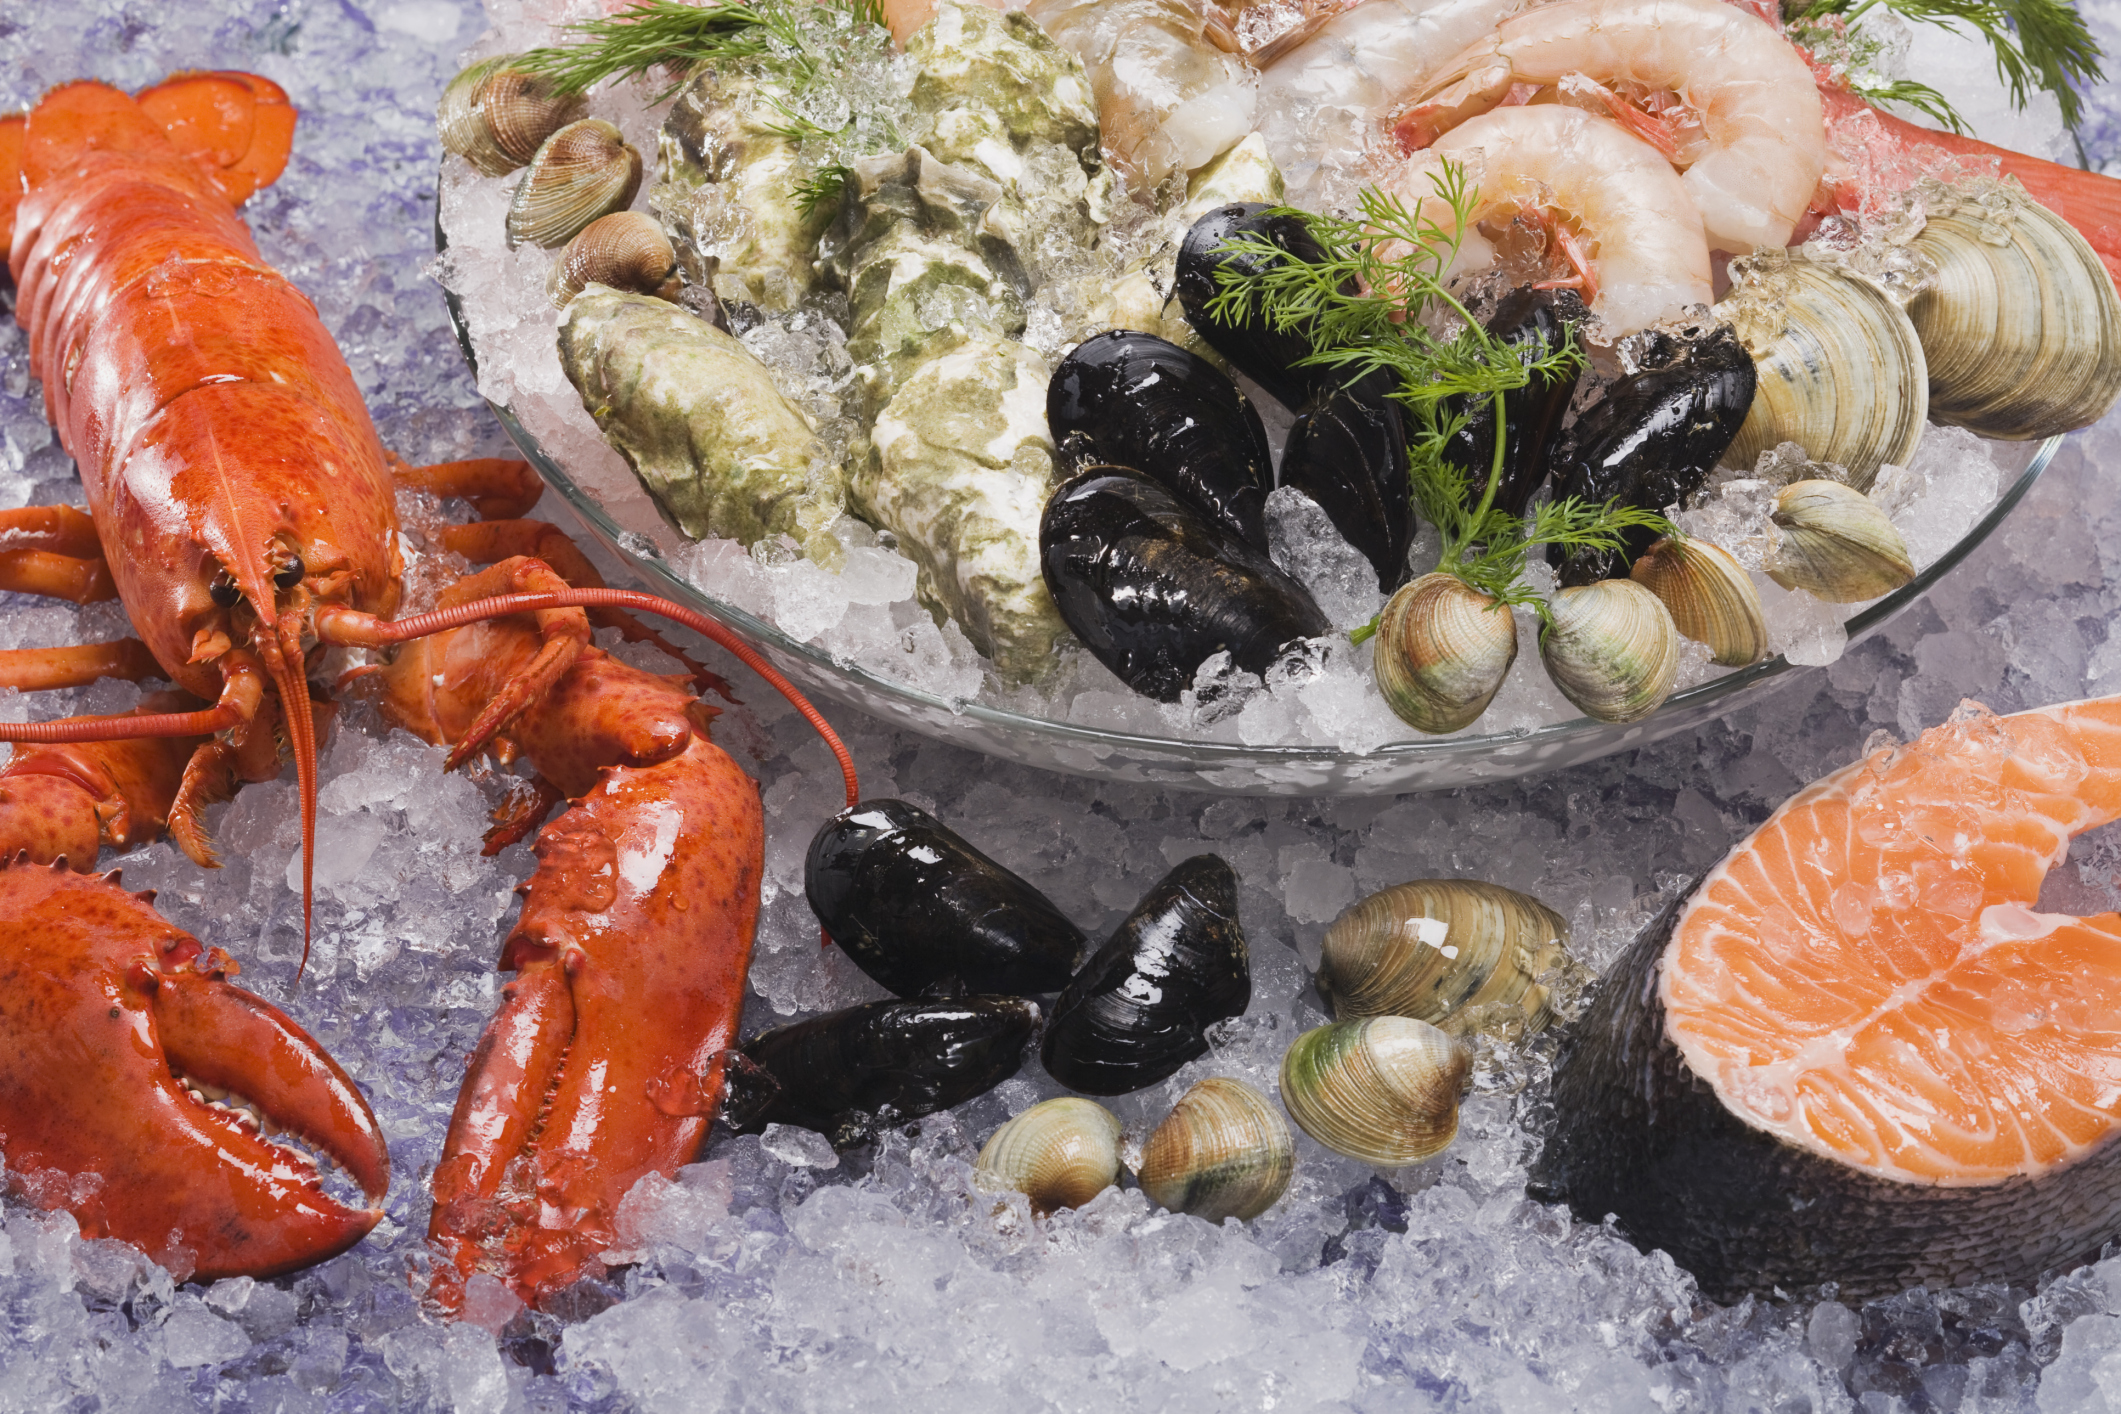 Fish and seafood are good sources of vitamin B-12.